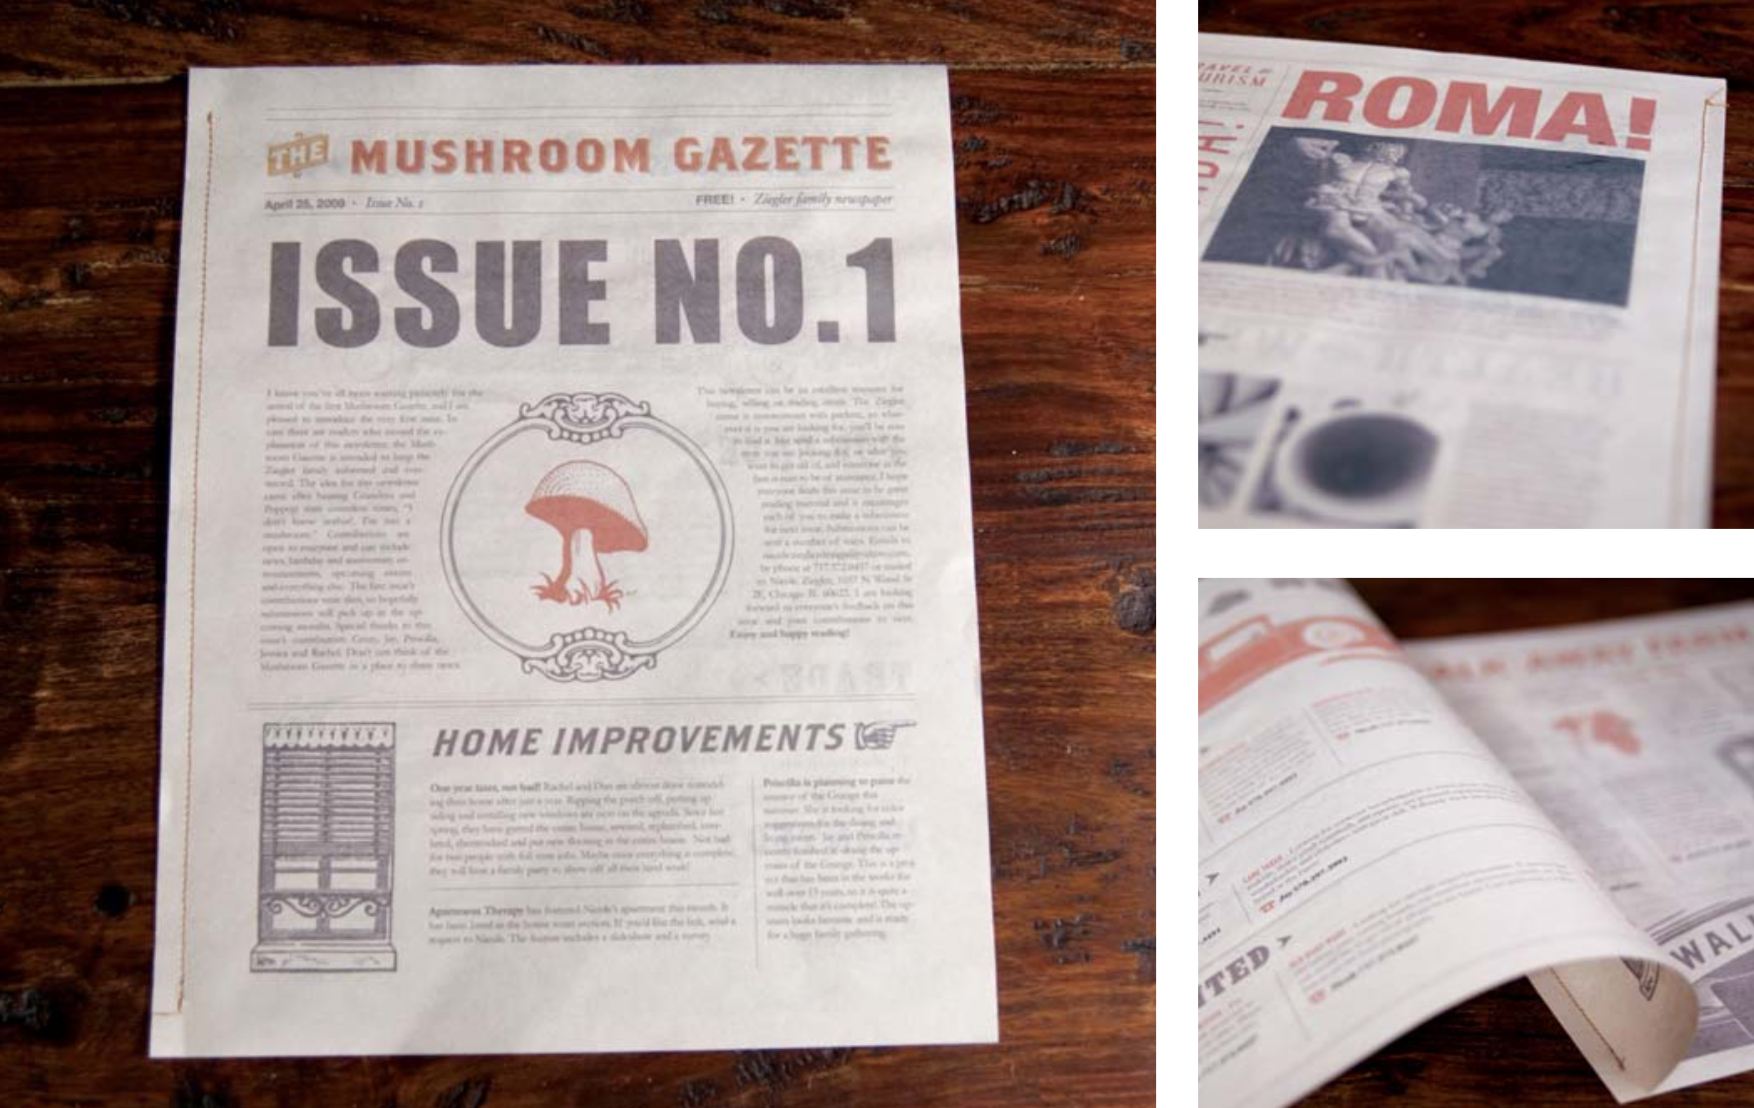 The Mushroom Gazette, the family newsletter for the Ziegler family.